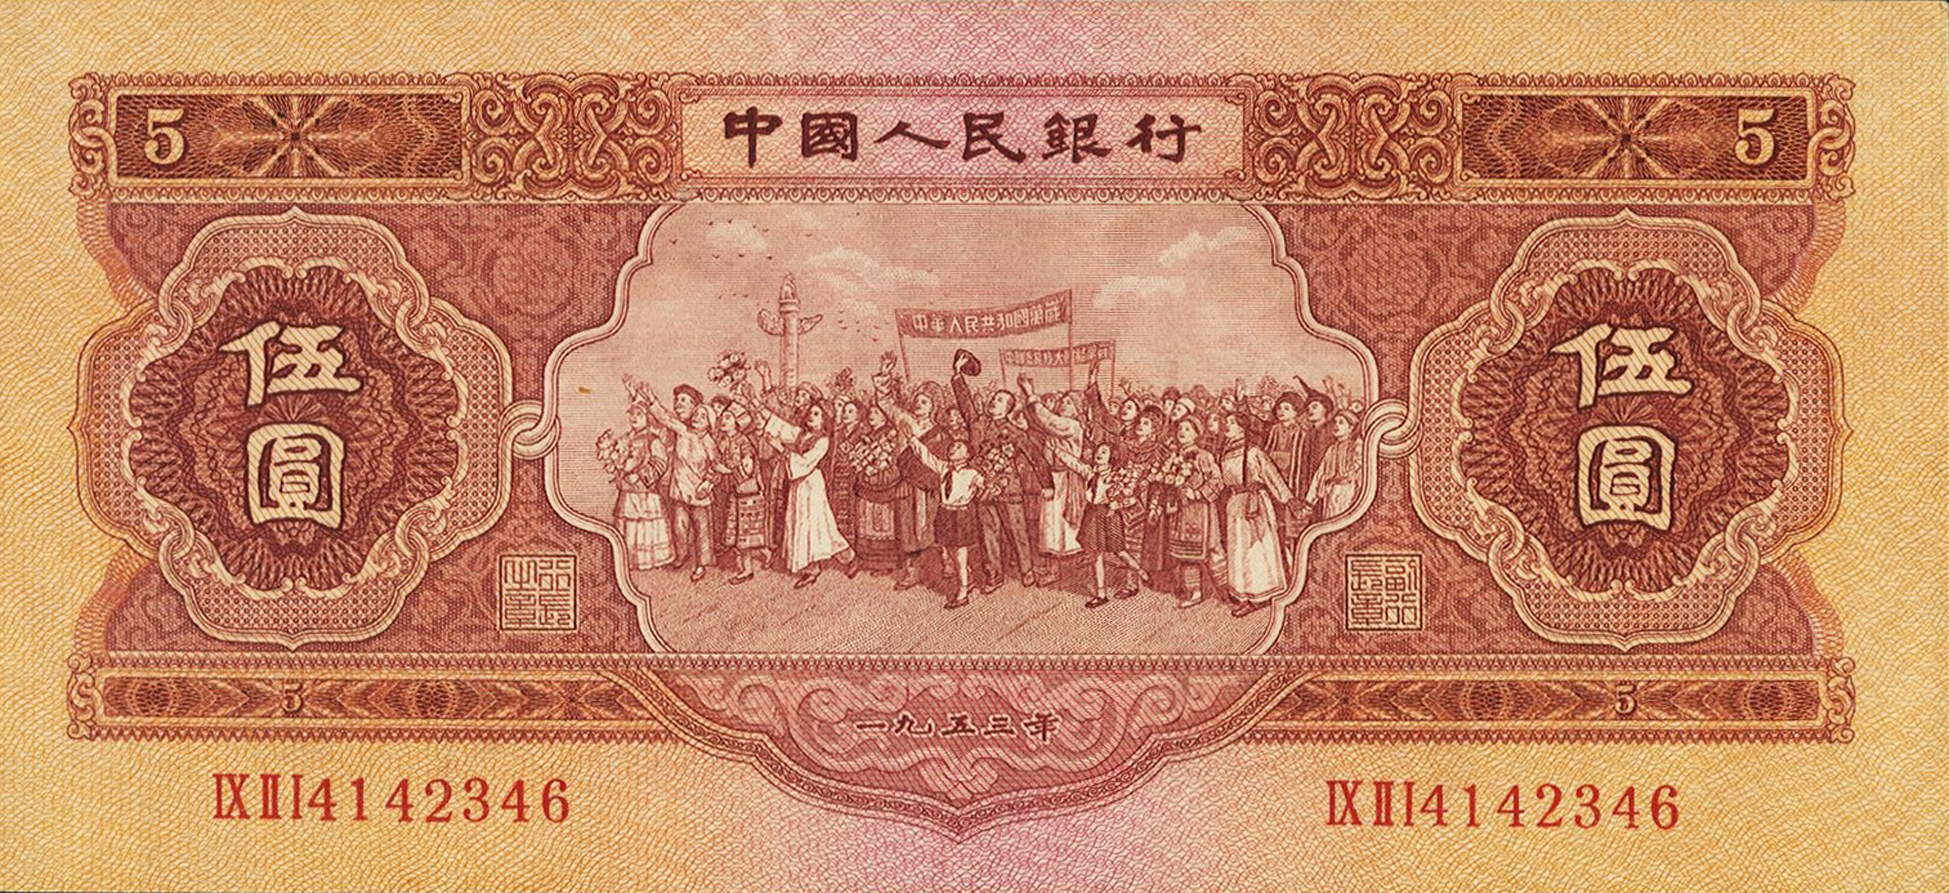 sample image for 1953 5 Yuan People's Bank of China